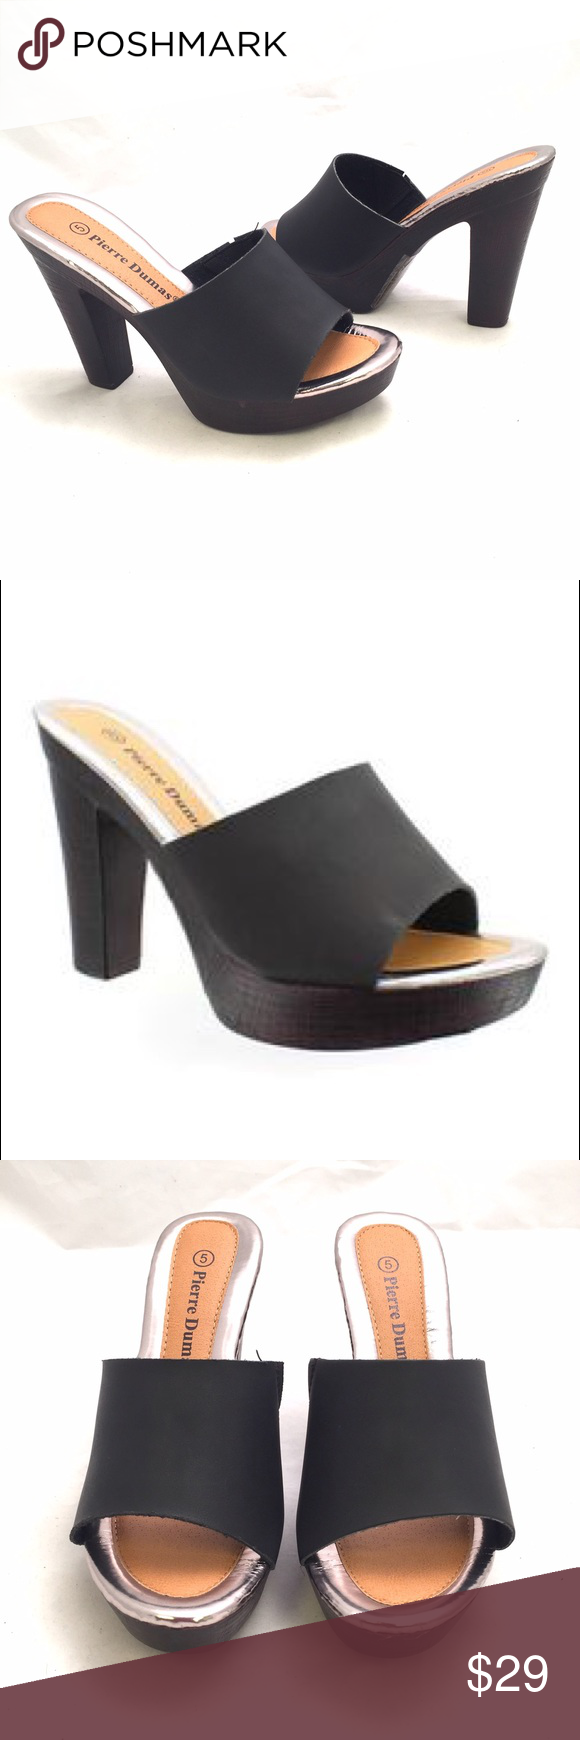 Pierre Dumas Casual Heels Dress it up or pair with your fav jeans, these adorable sandal heels are an instant fav. Featuring a wood-like heel and a simple strap on front, you can't miss out on these. Heel measures 4.25' and platform almost 1'. Medium width and true to size. Pierre Dumas Shoes Heels